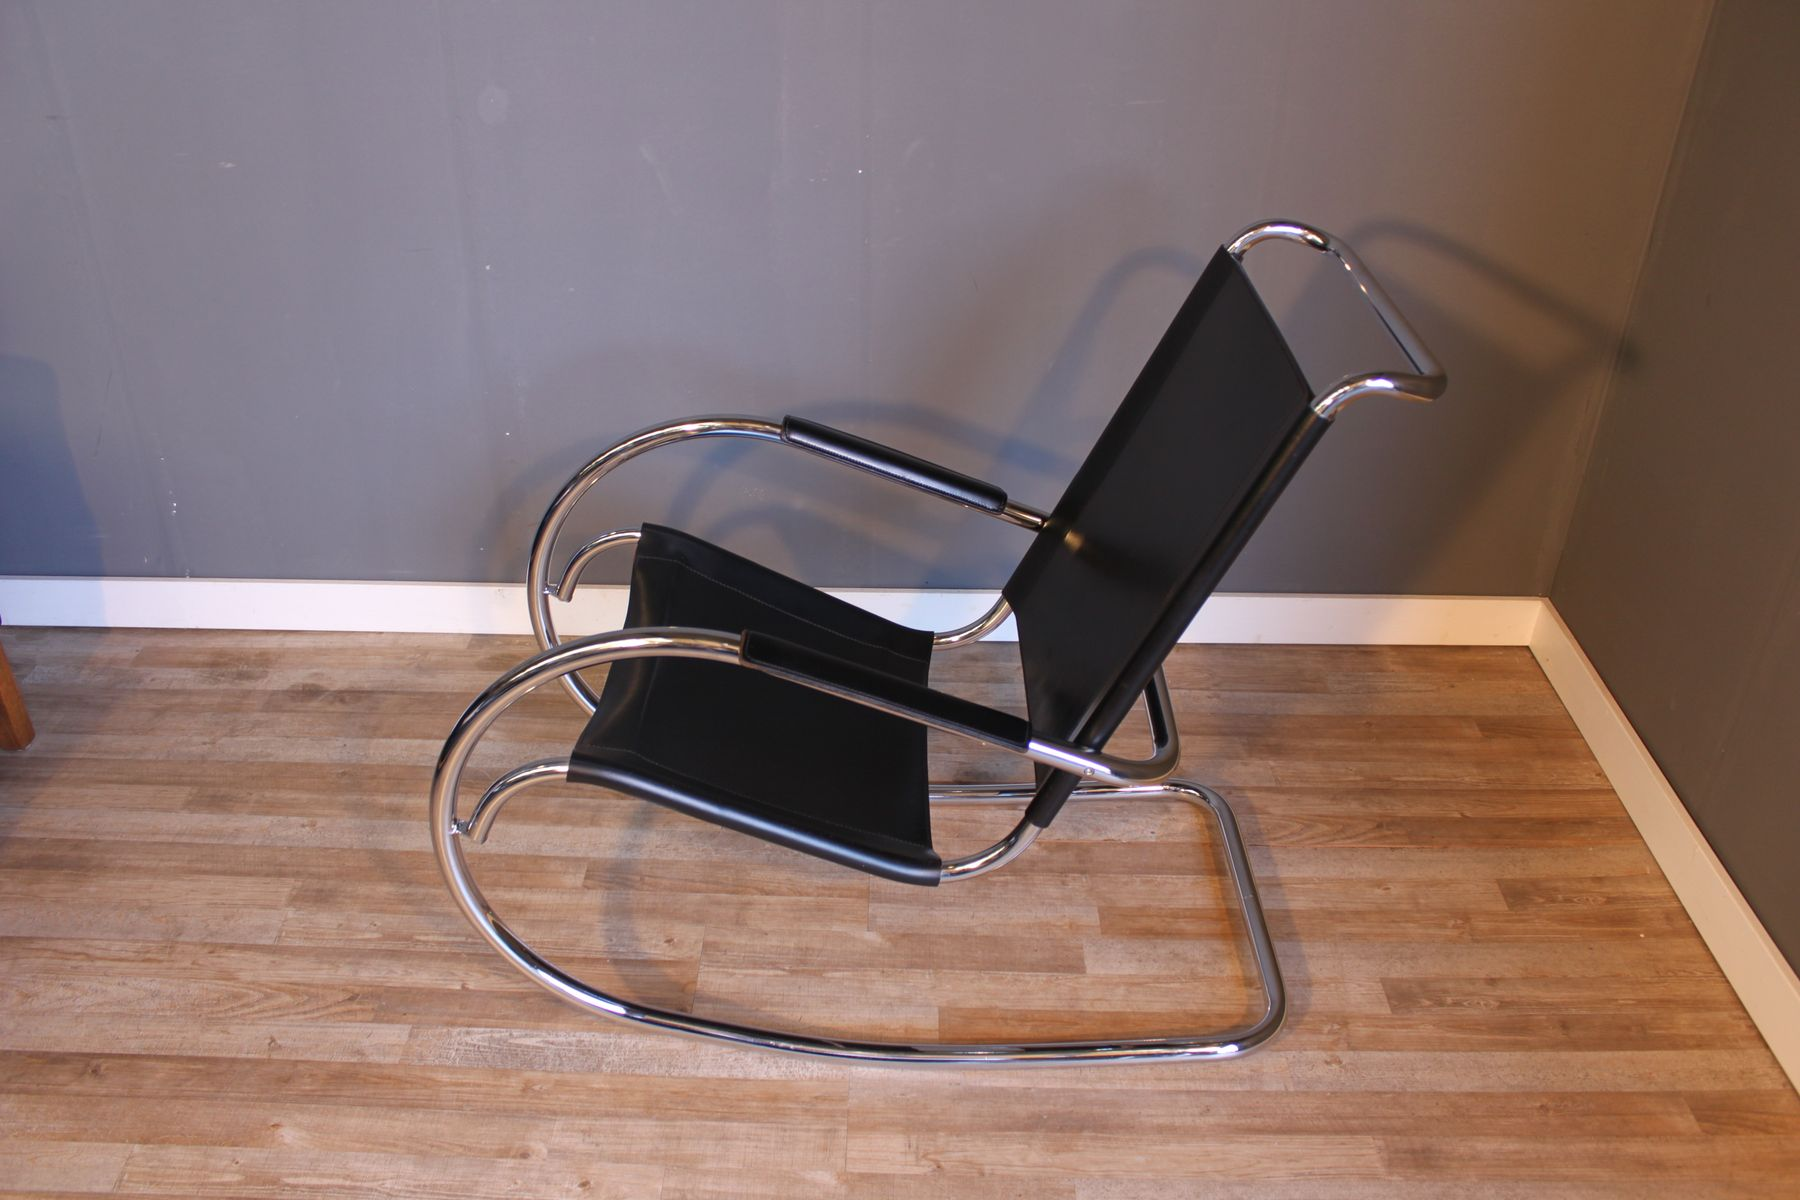 Mid Century Steel Tube Rocking Chair By Mies Van Der Rohe For Knoll For Sale At Pamono